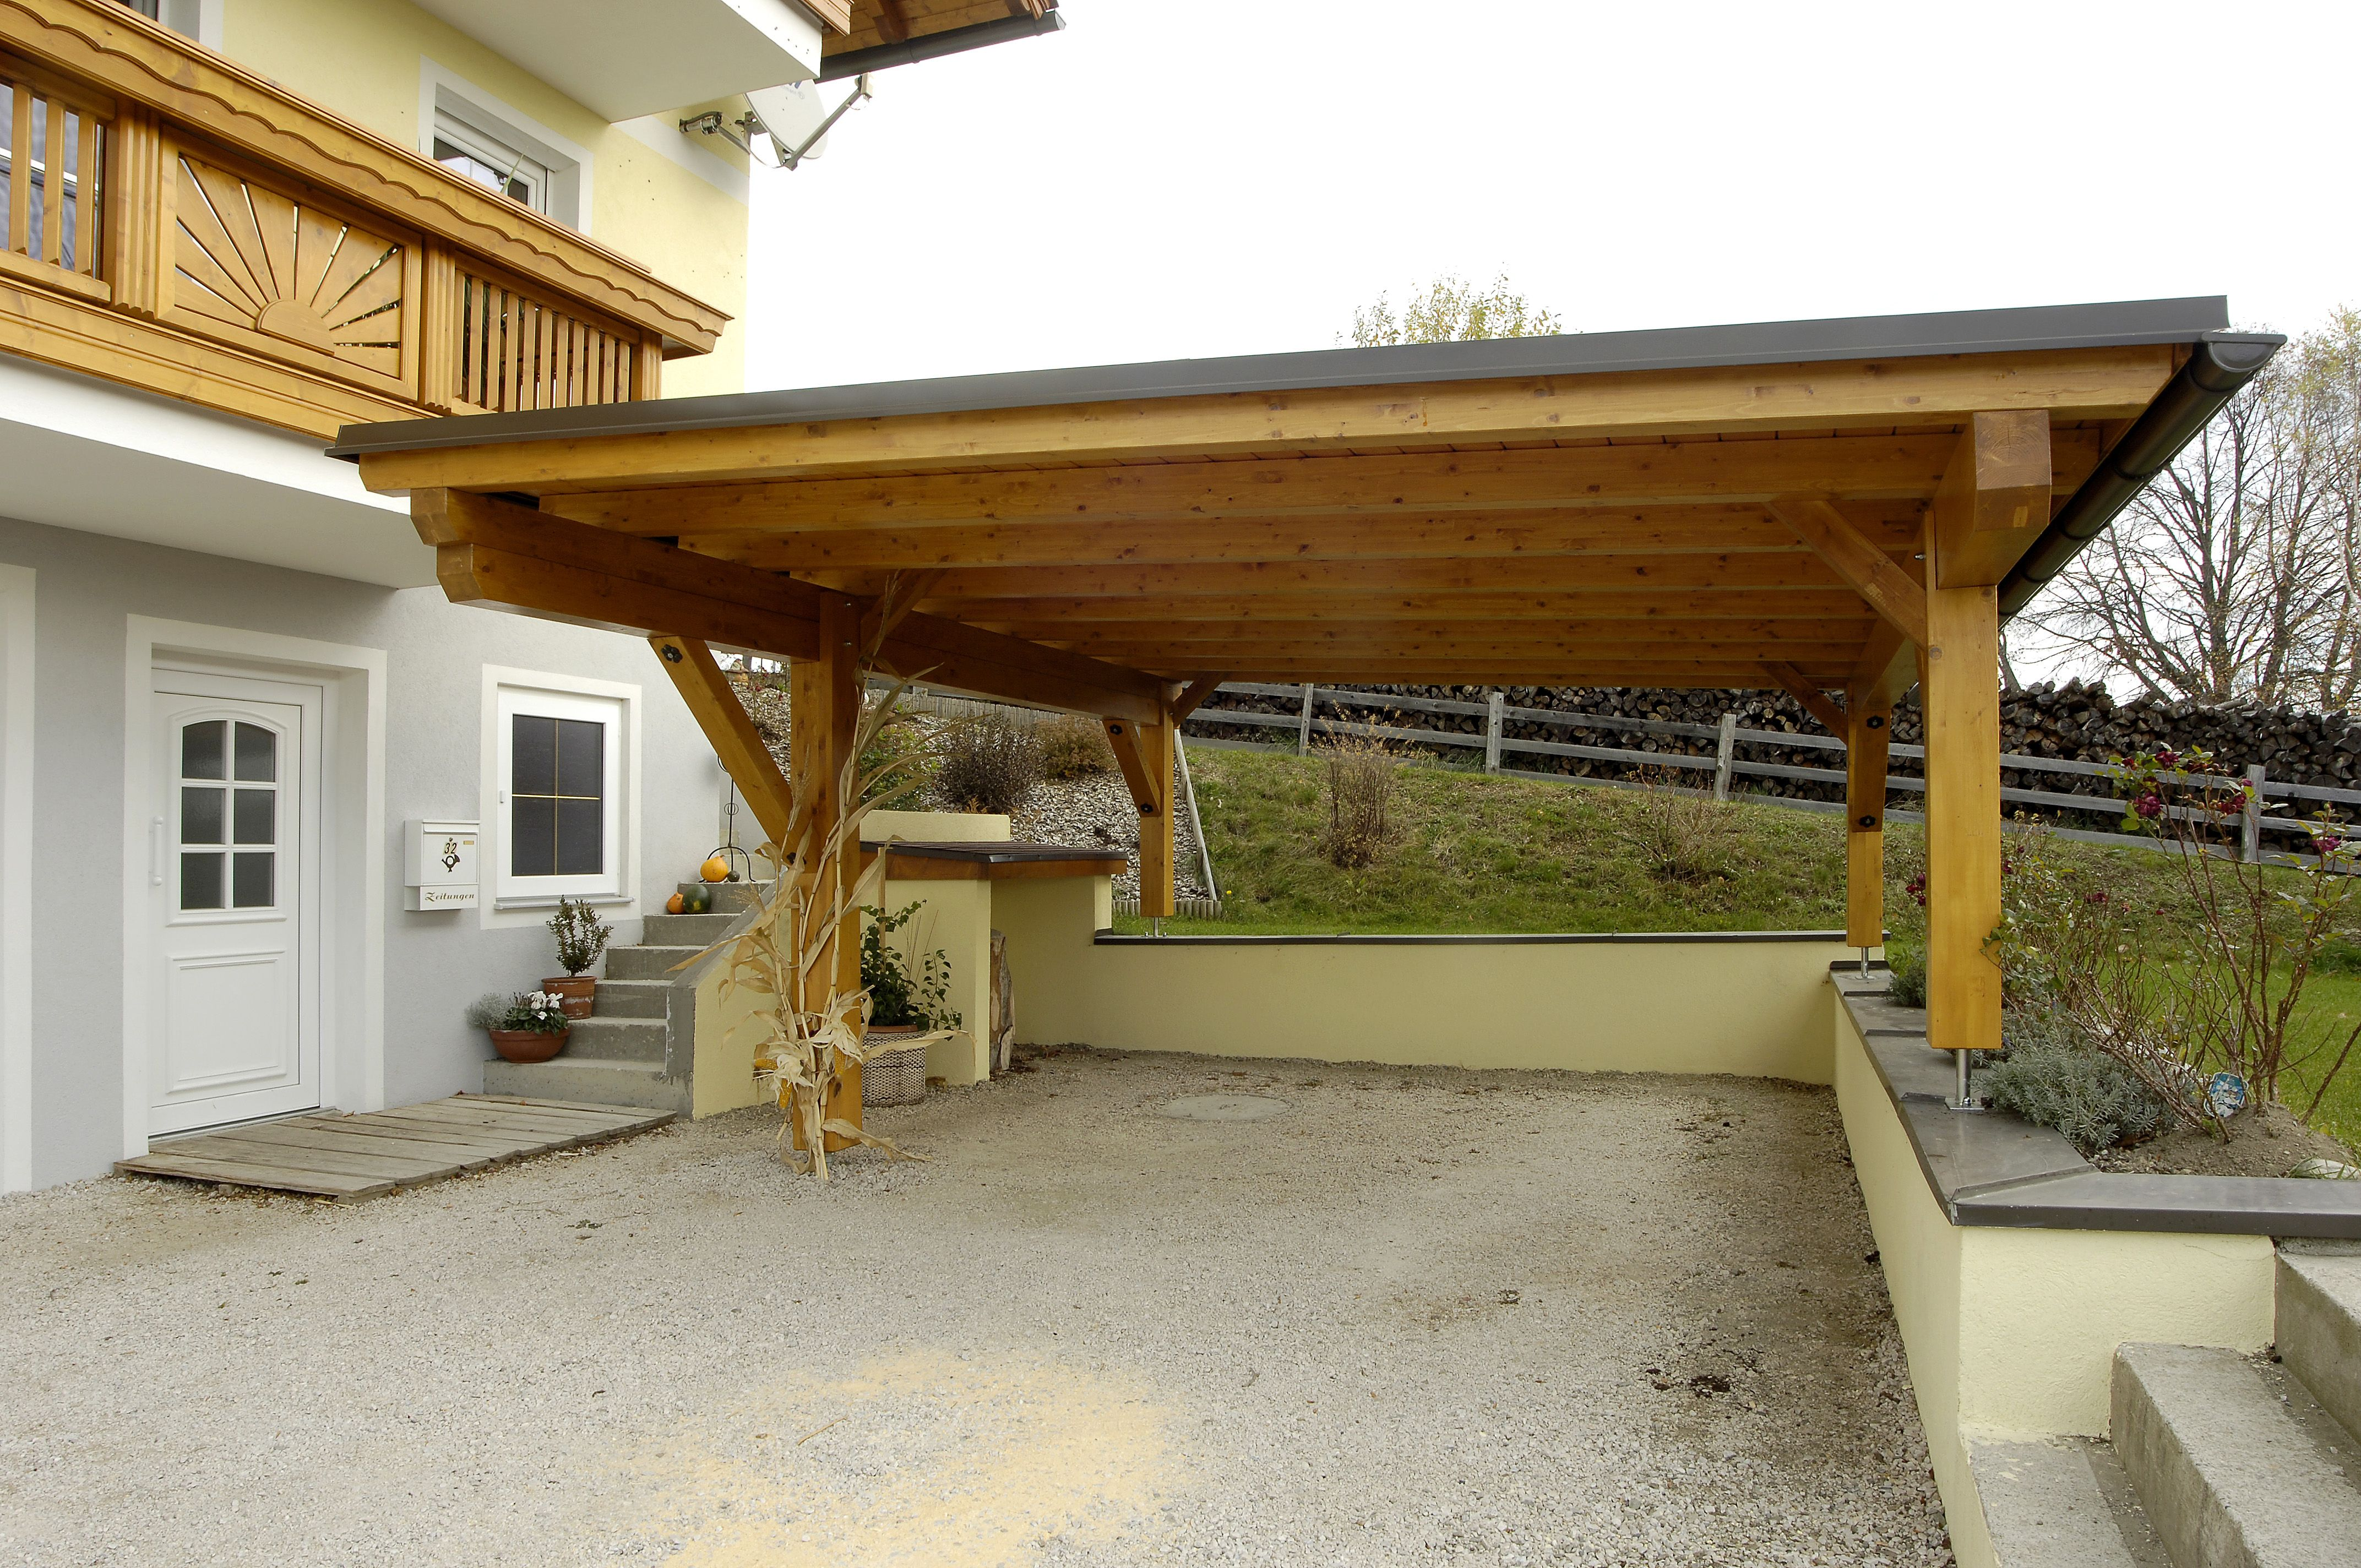 The frame of this carport is a wooden material that cover